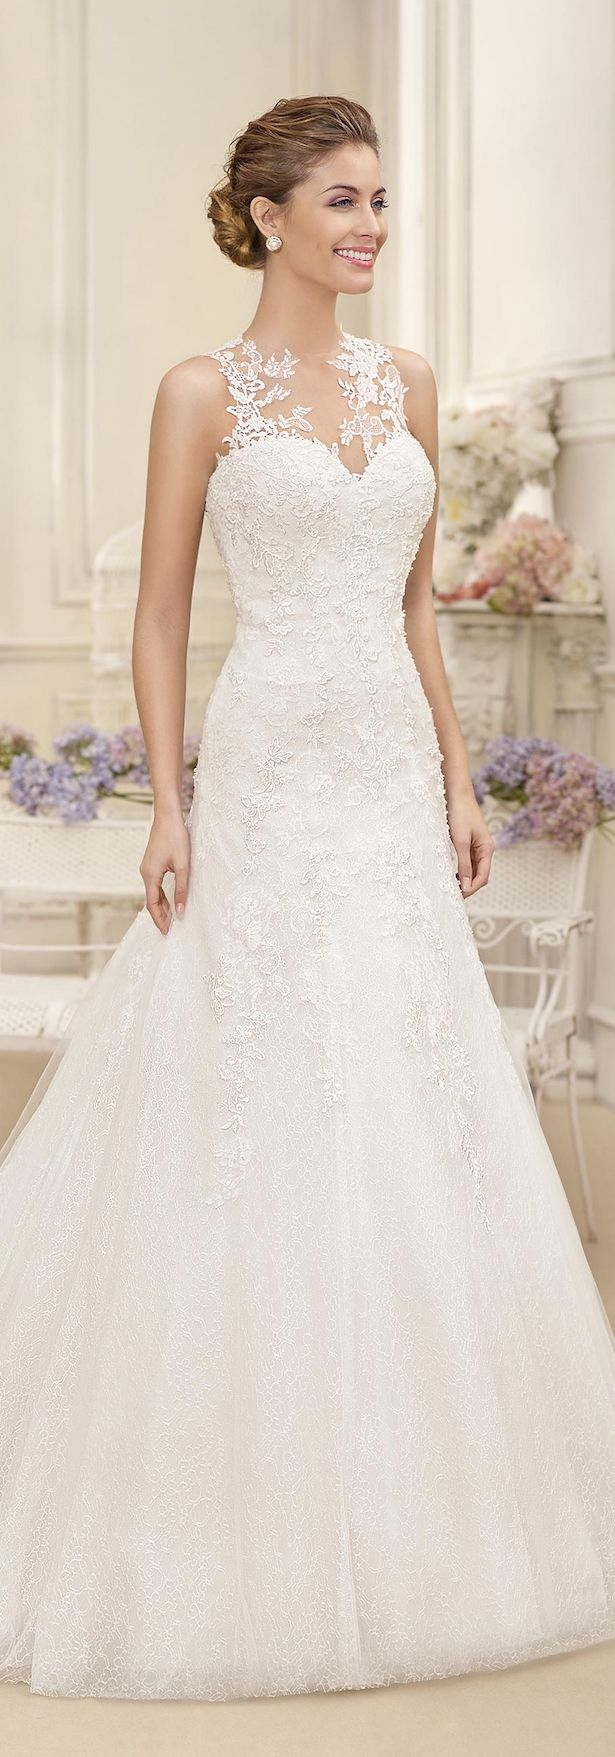 7276 best Wedding Dresses images on Pinterest | Gown wedding ...